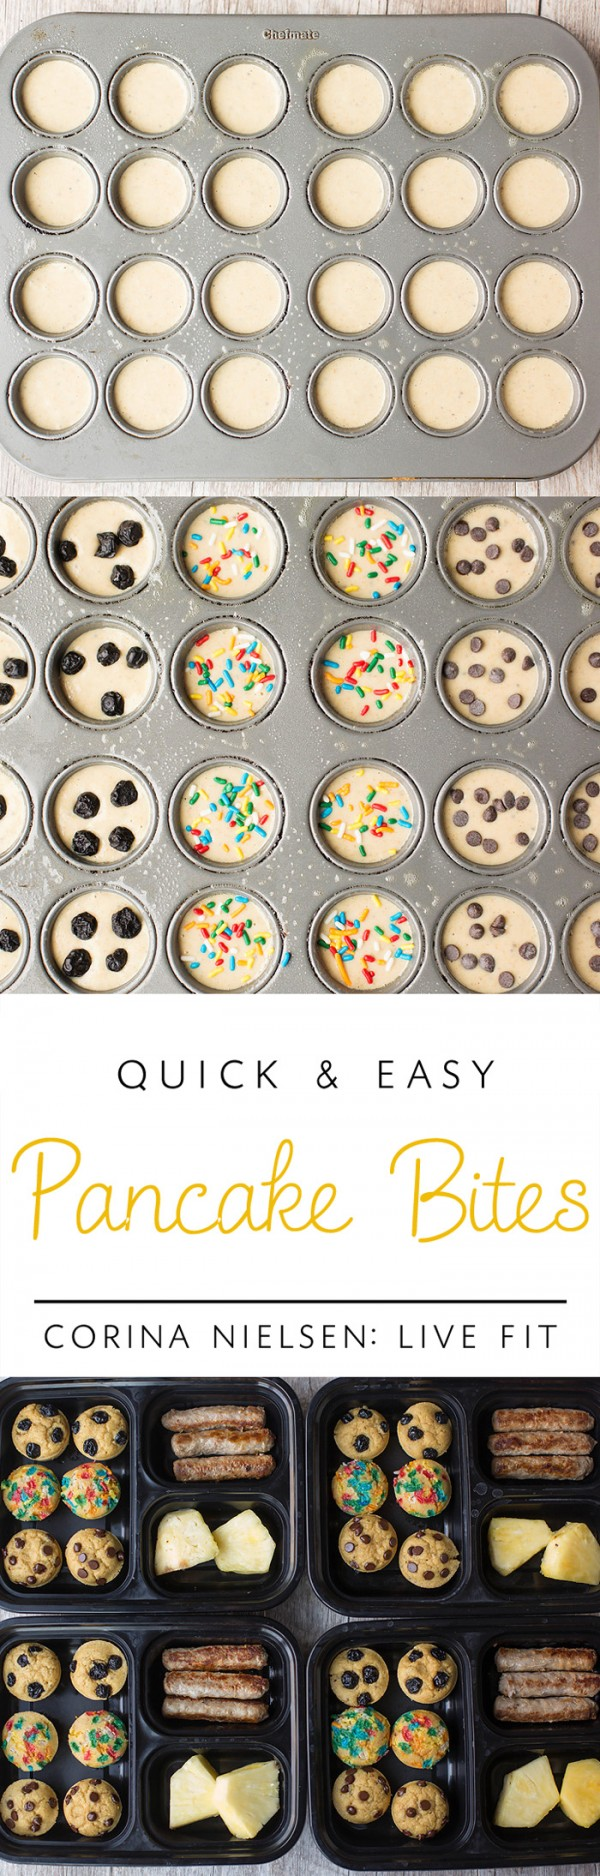 Get the recipe Quick and Easy Pancakes Bites @recipes_to_go